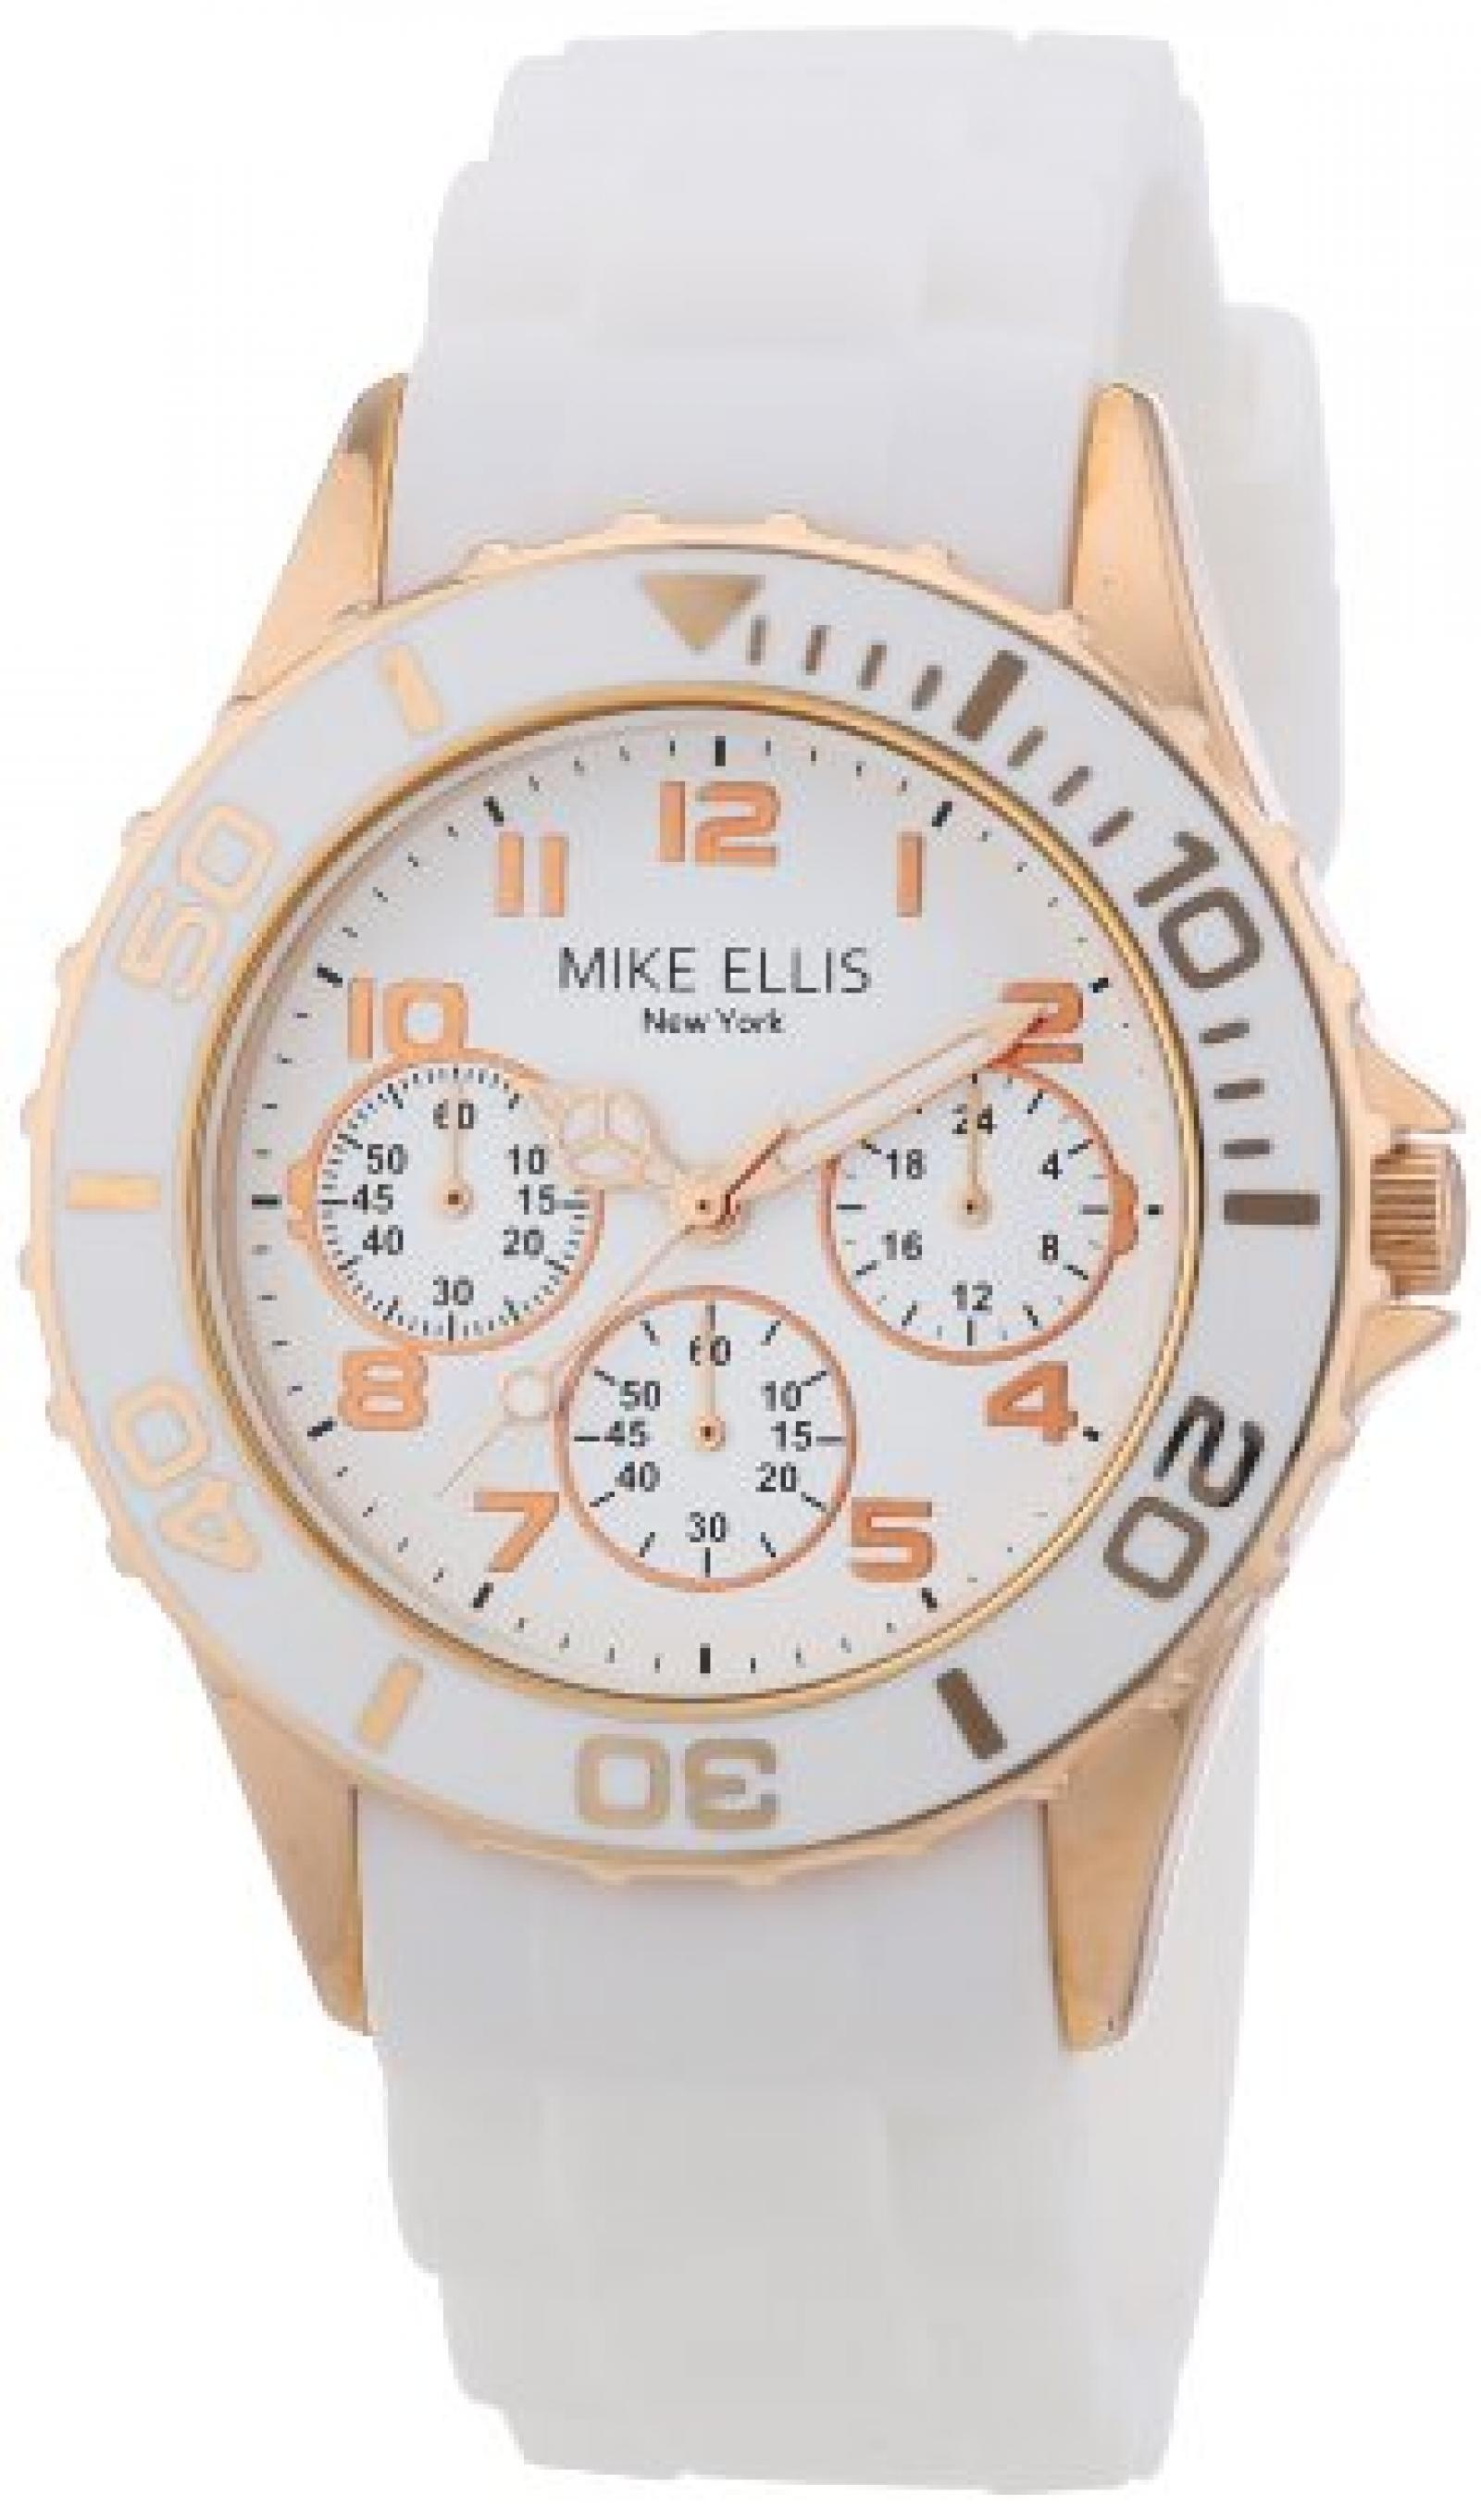 Mike Ellis New York Damen-Armbanduhr Analog Quarz Silikon S2703ARS